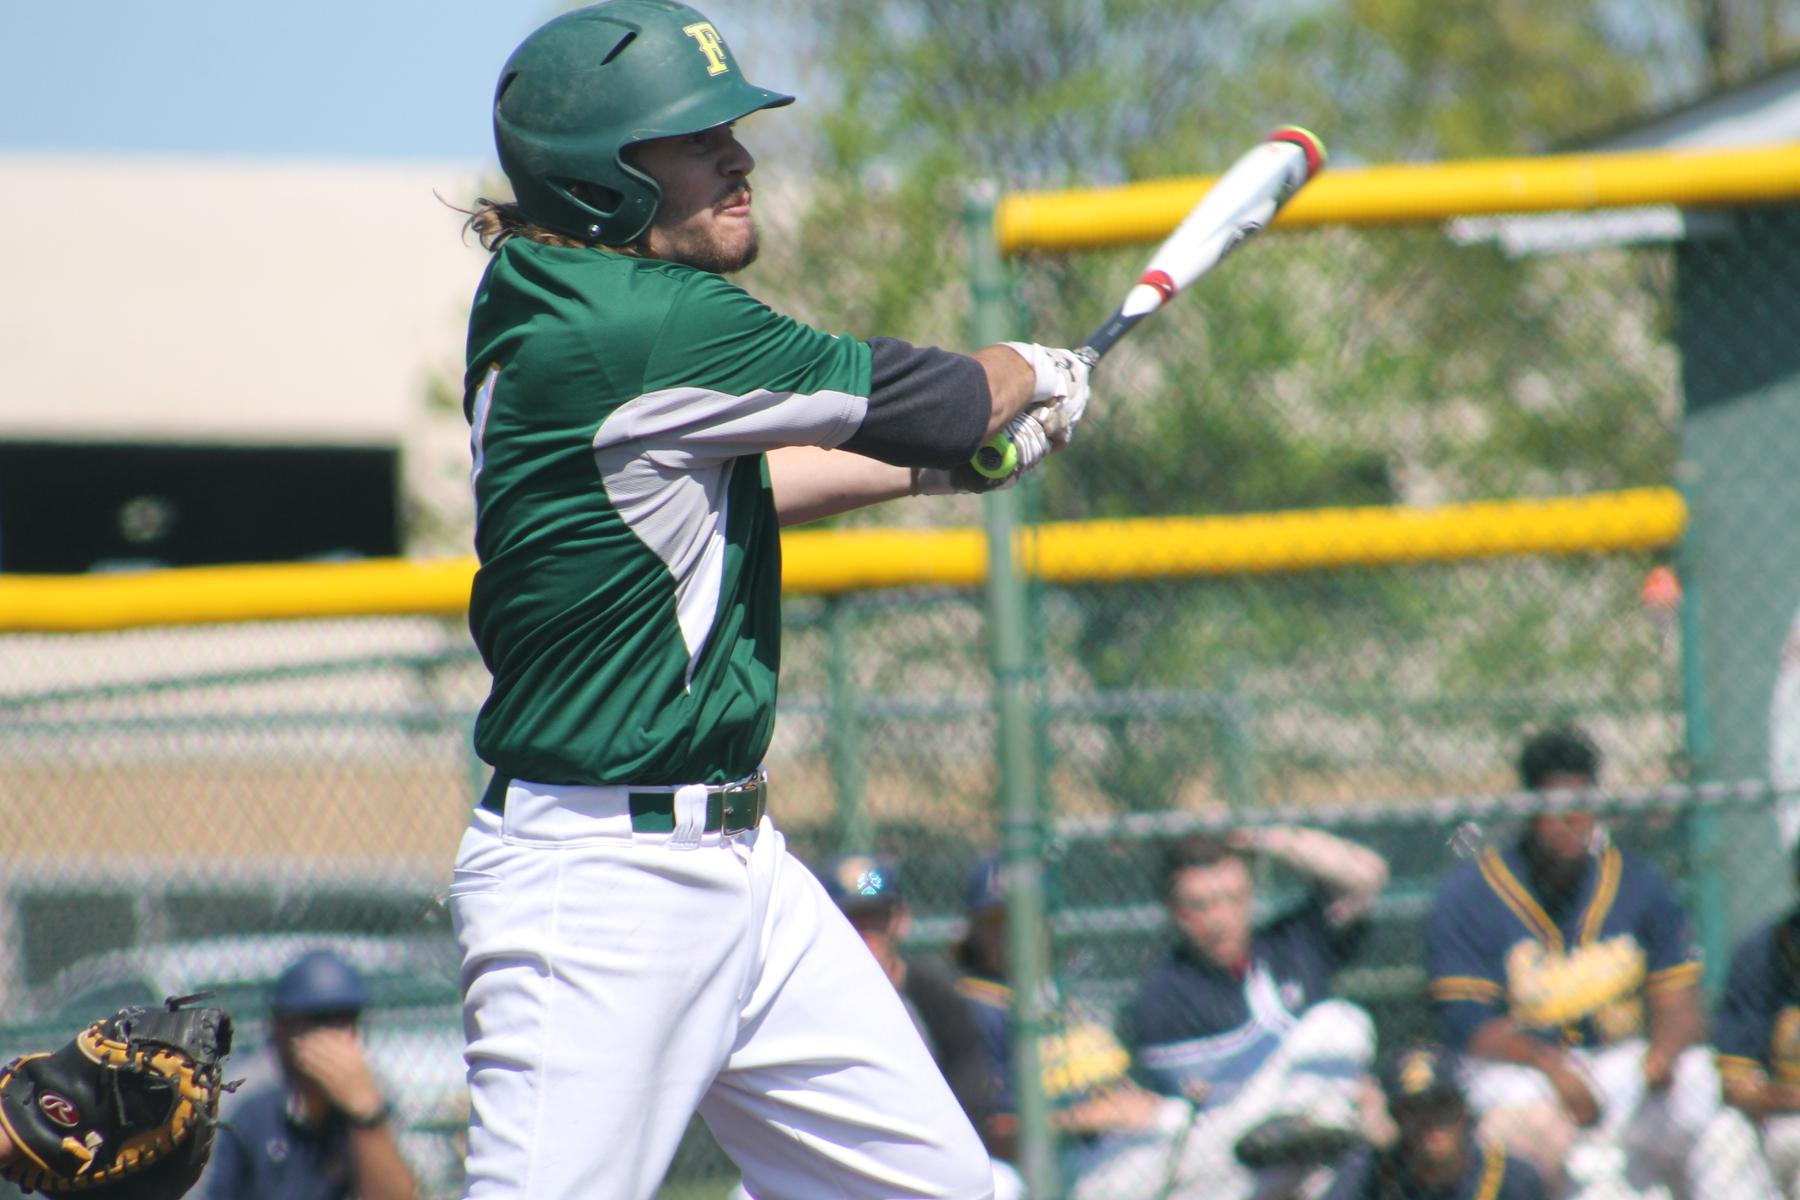 Baseball Splits Doubleheader With Lions